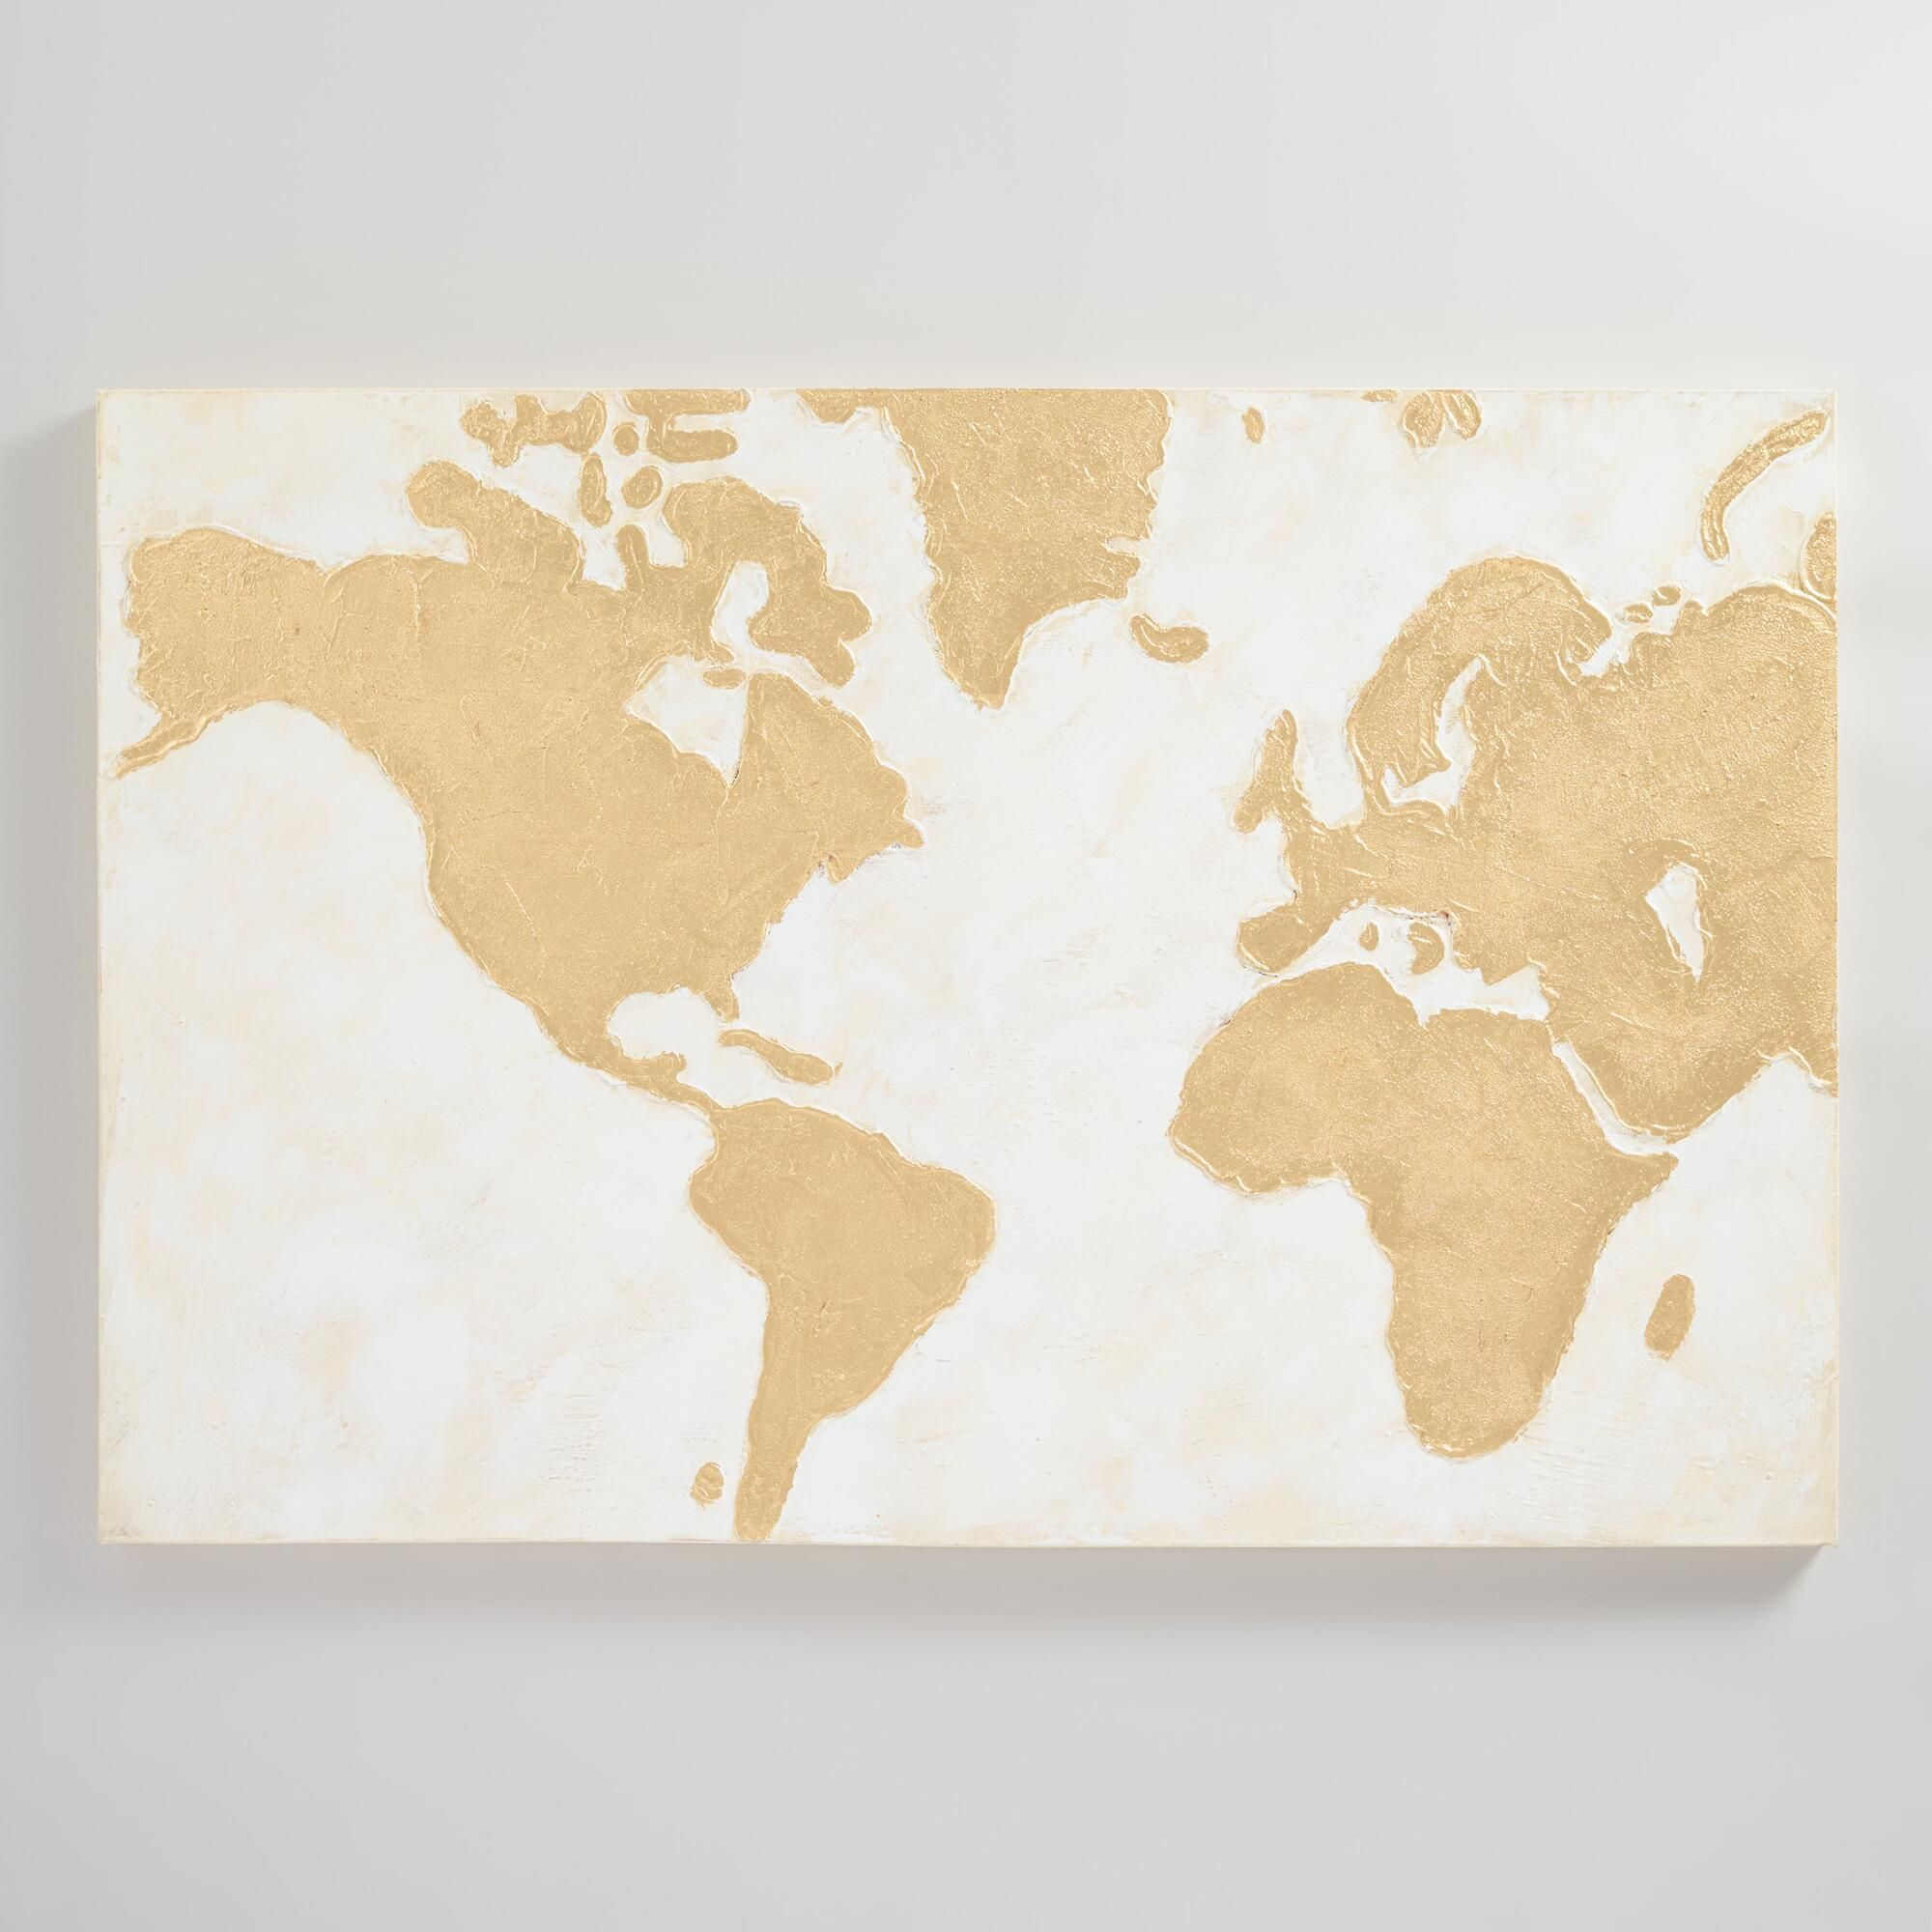 Gilded World Map Wall Art: White - Canvas - Large by World Market ...